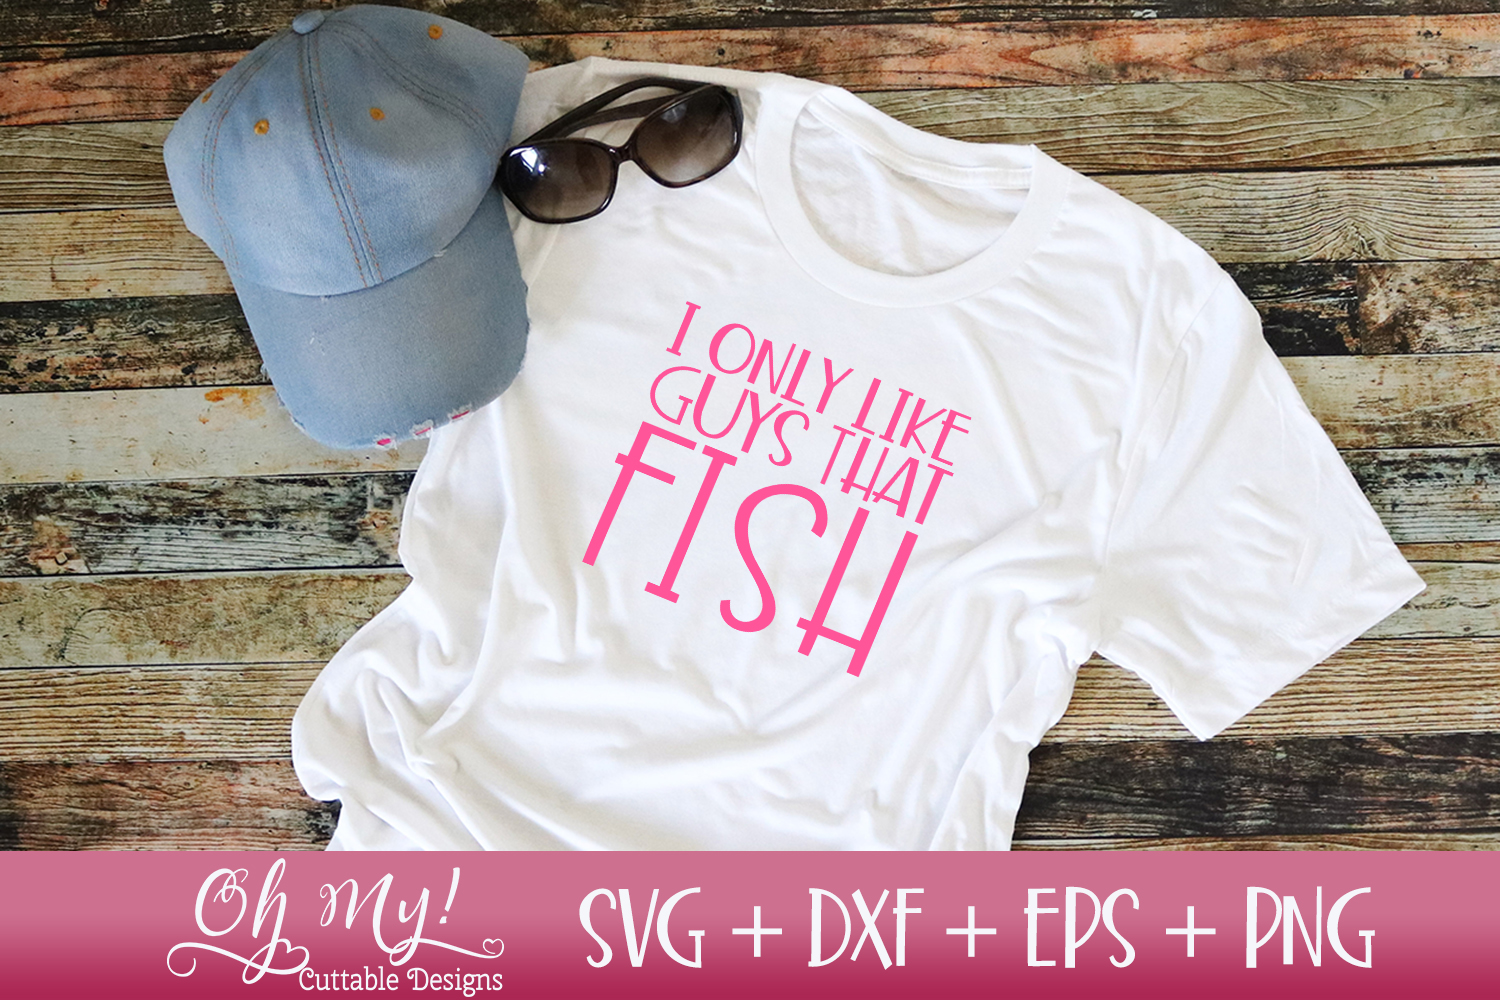 I Only Like Guys That Fish - SVG DXF EPS PNG Cutting example image 2